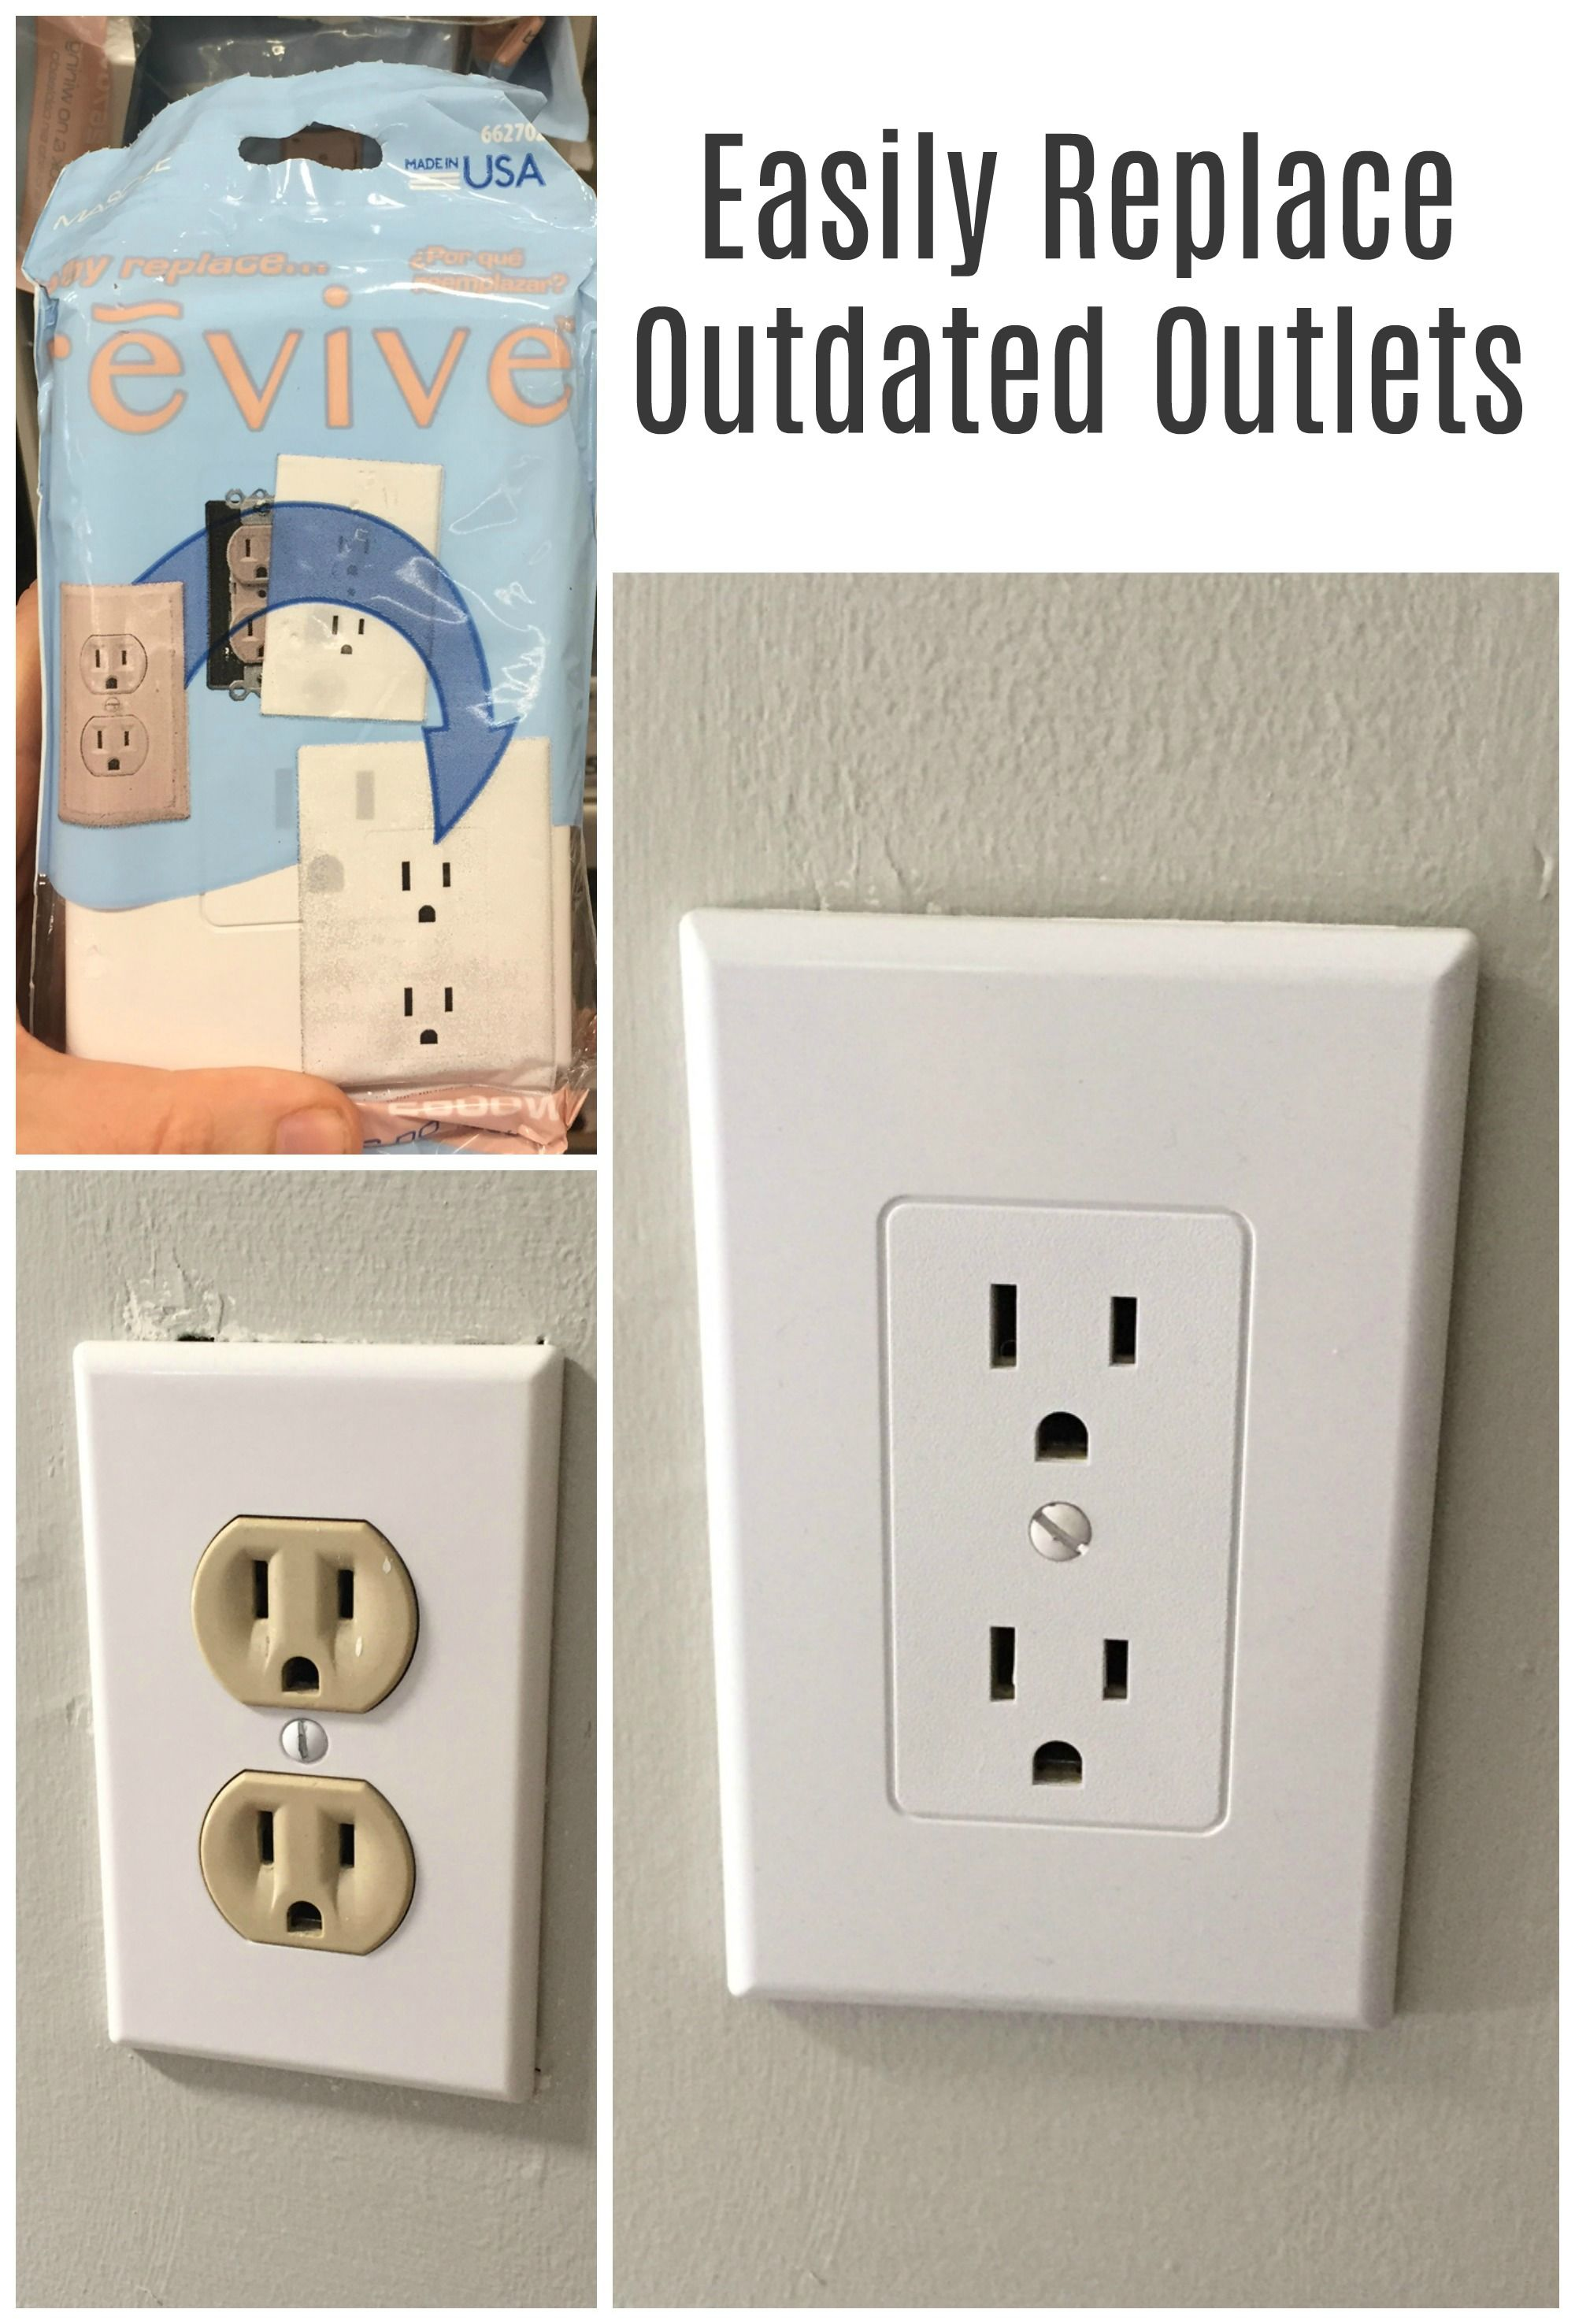 I had no idea it was this easy to replace the old beige outlets ...